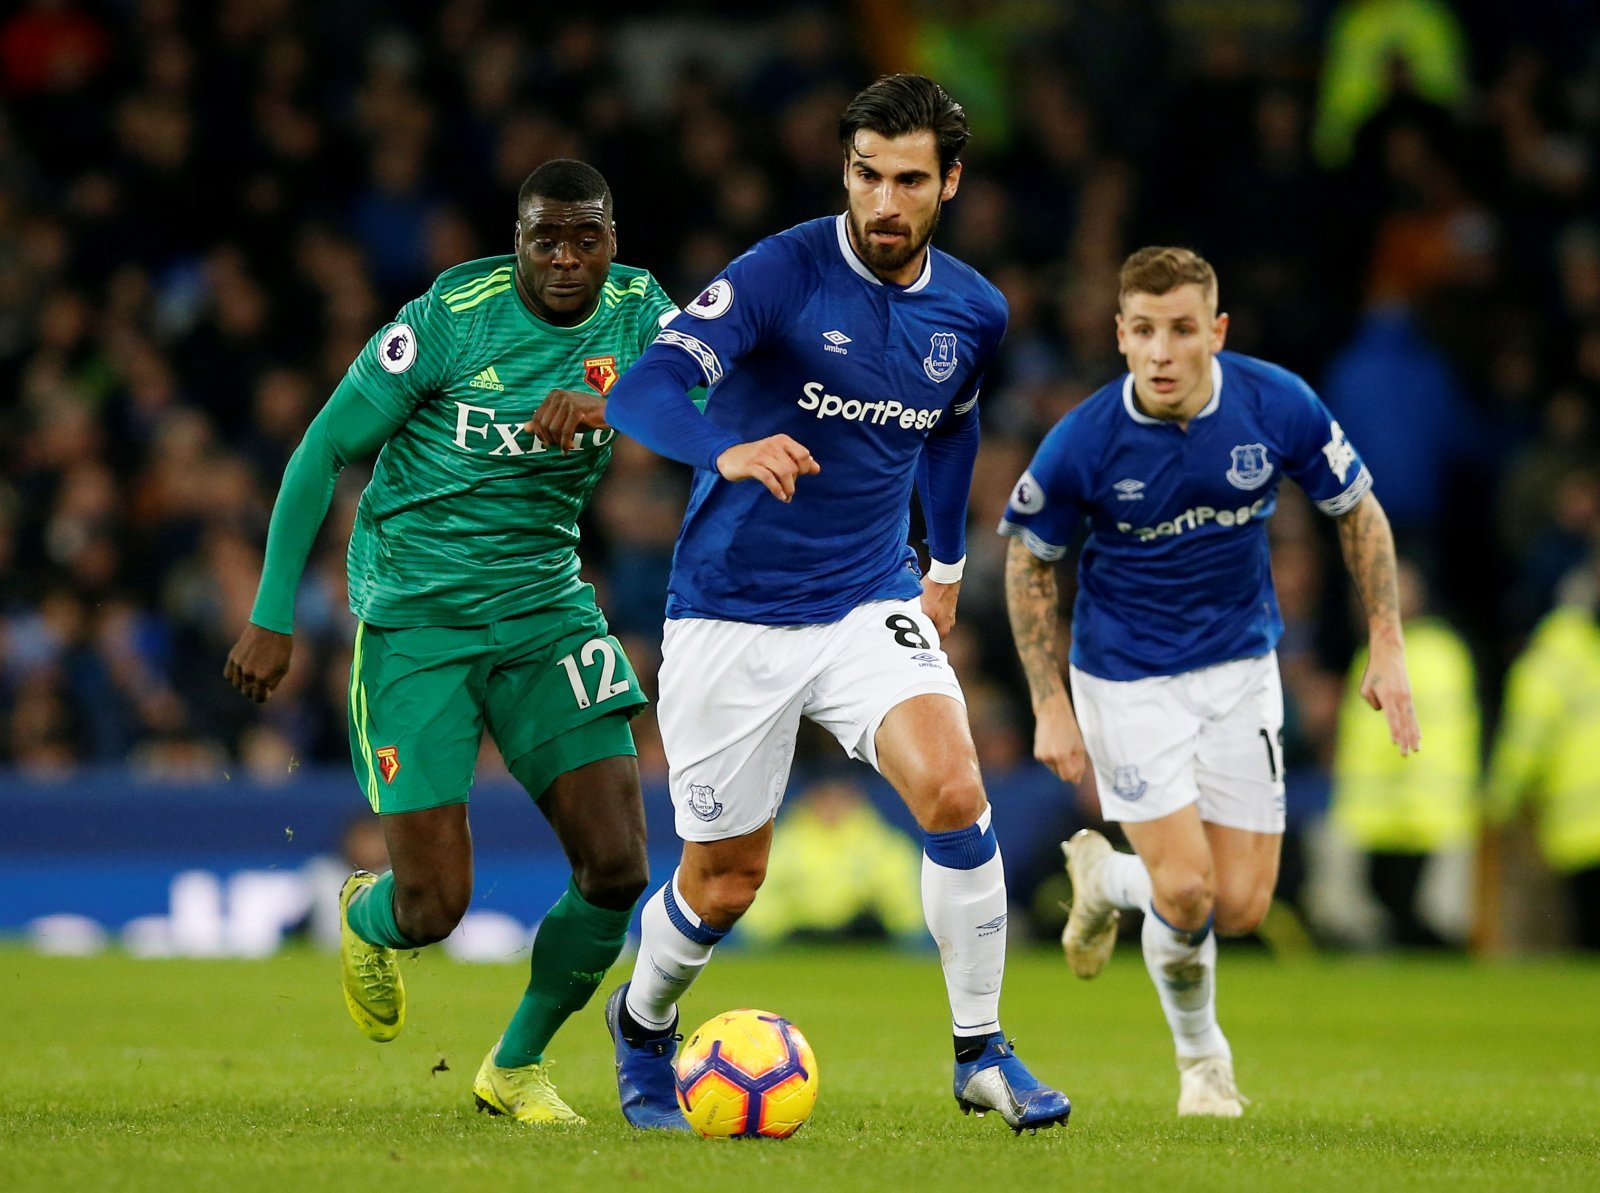 Losing Andre Gomes to Tottenham would underline just how far behind Everton really are